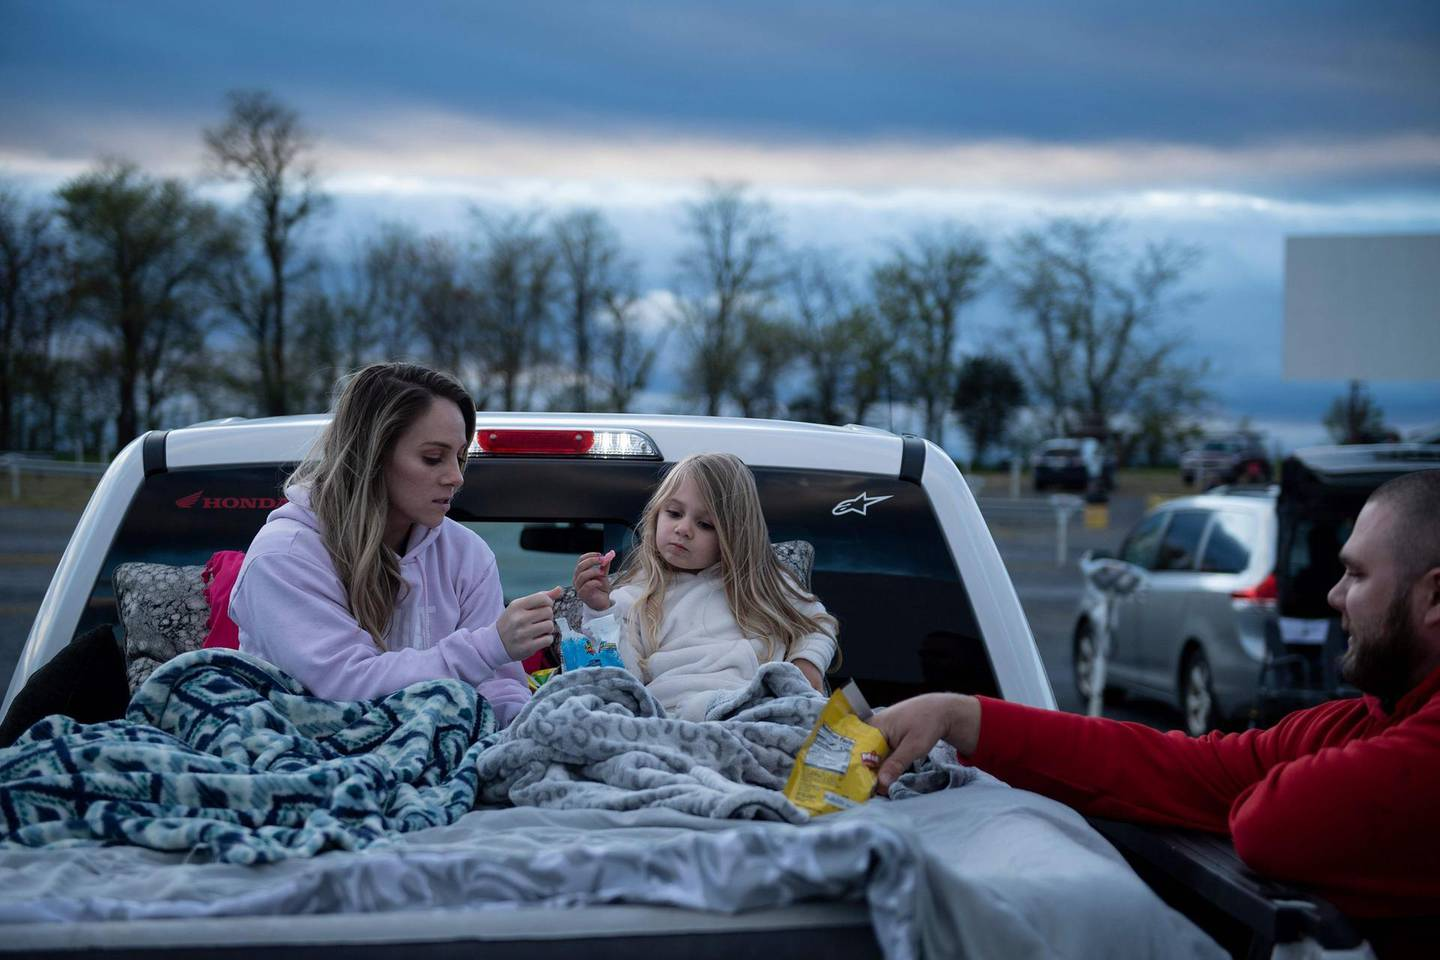 Summer Edwards, Kimberlyn Edwards, and Chance Edwards eat snacks while waiting for the movie to start at the Family Drive-In Theatre during its opening night amid novel coronavirus restrictions on May 1, 2020, in Stephens City, Virginia. The theatre managment implemented special coronavirus policies to insure everyone safety. Virginia Governor Ralph Northam had ordered the closing of nonessential businesses through May 8, he is scheduled to present new guidelines on May 4. / AFP / Brendan Smialowski